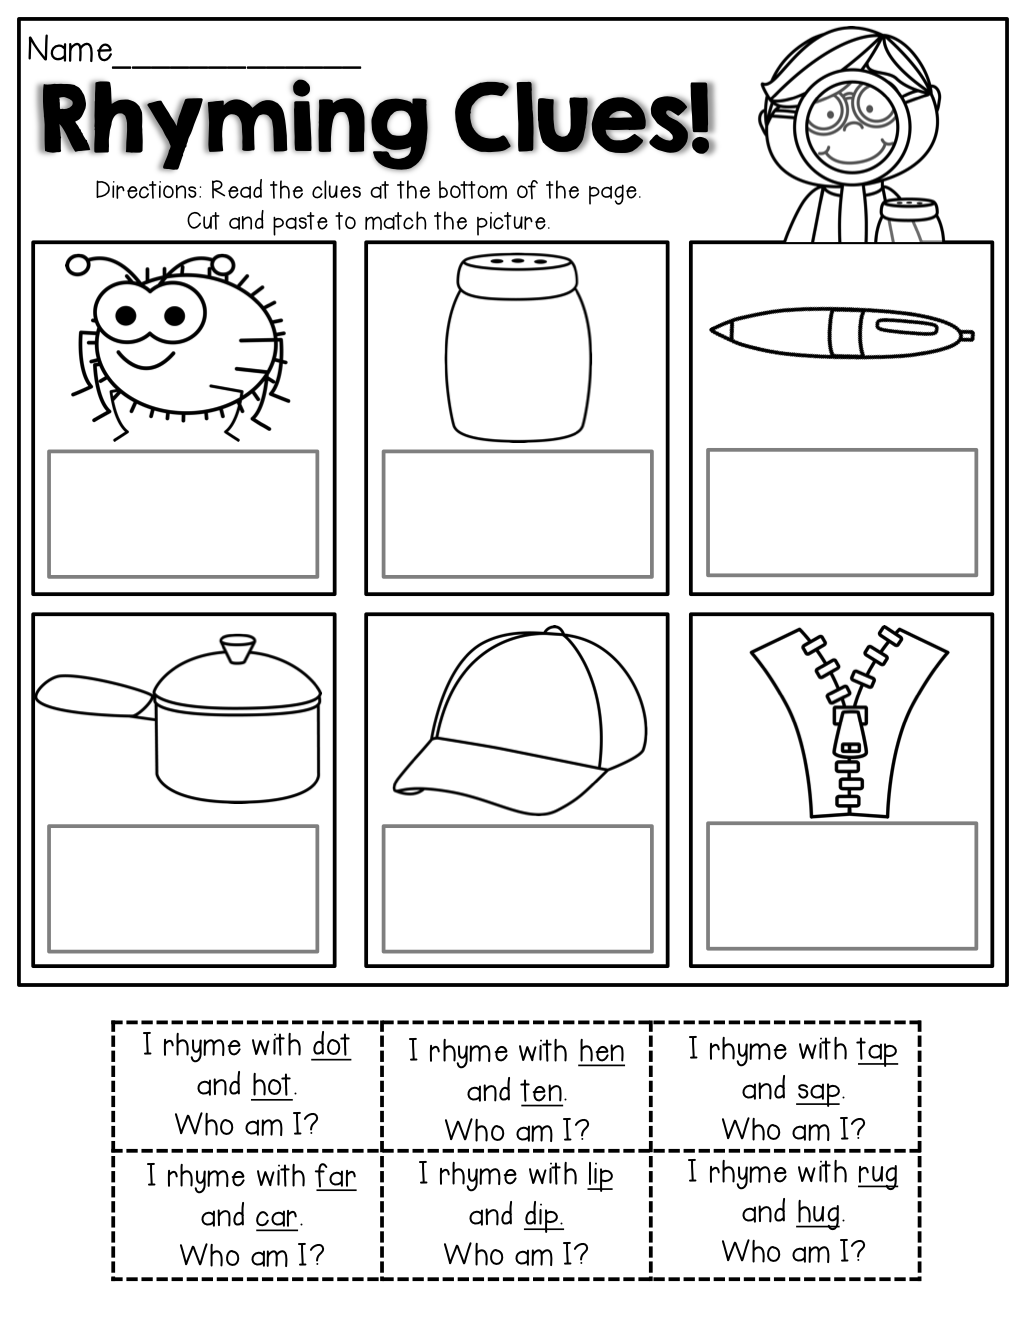 worksheet Kindergarten Rhyming Worksheets read the simple clues that have rhyming words match picture great for beginning